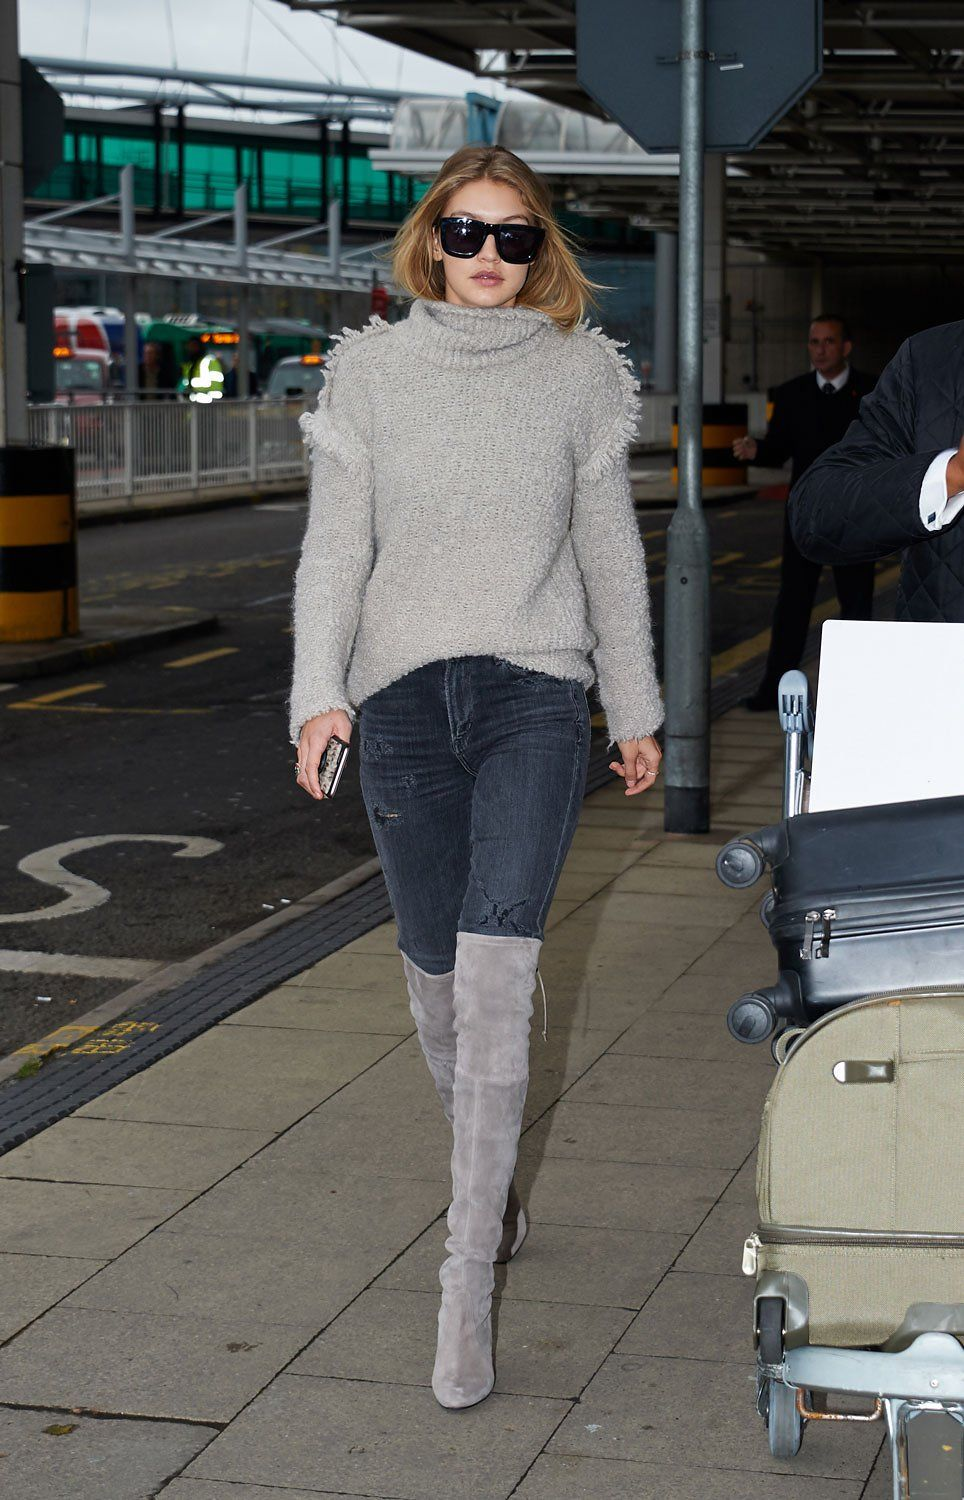 Has Gigi Hadid Discovered the Perfect Boots for Airport